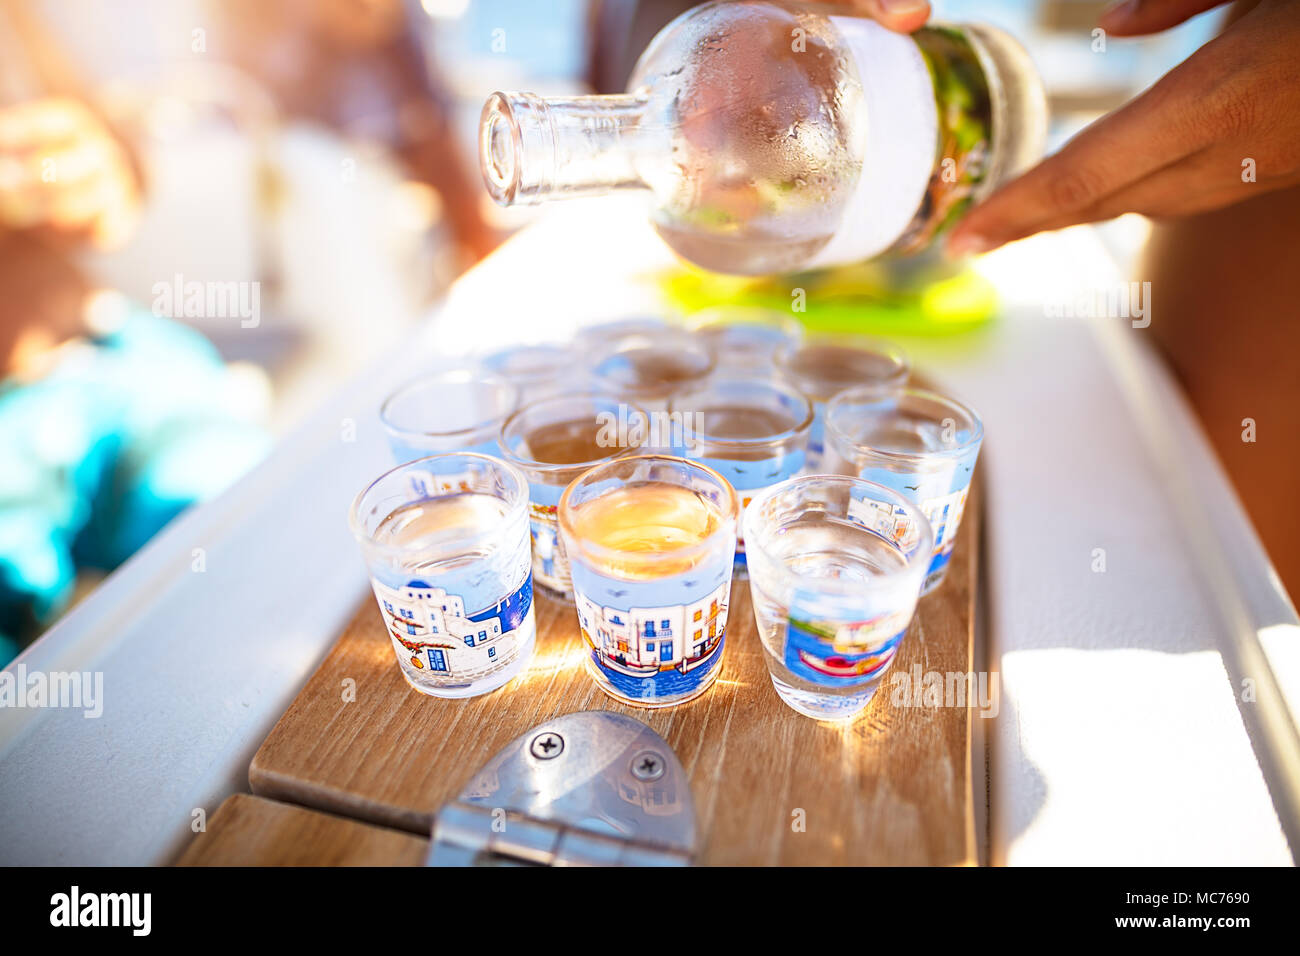 Party on the beach, refill glass with alcoholic beverage, drinking shots with friends, enjoying freedom, happy carefree summer vacation - Stock Image